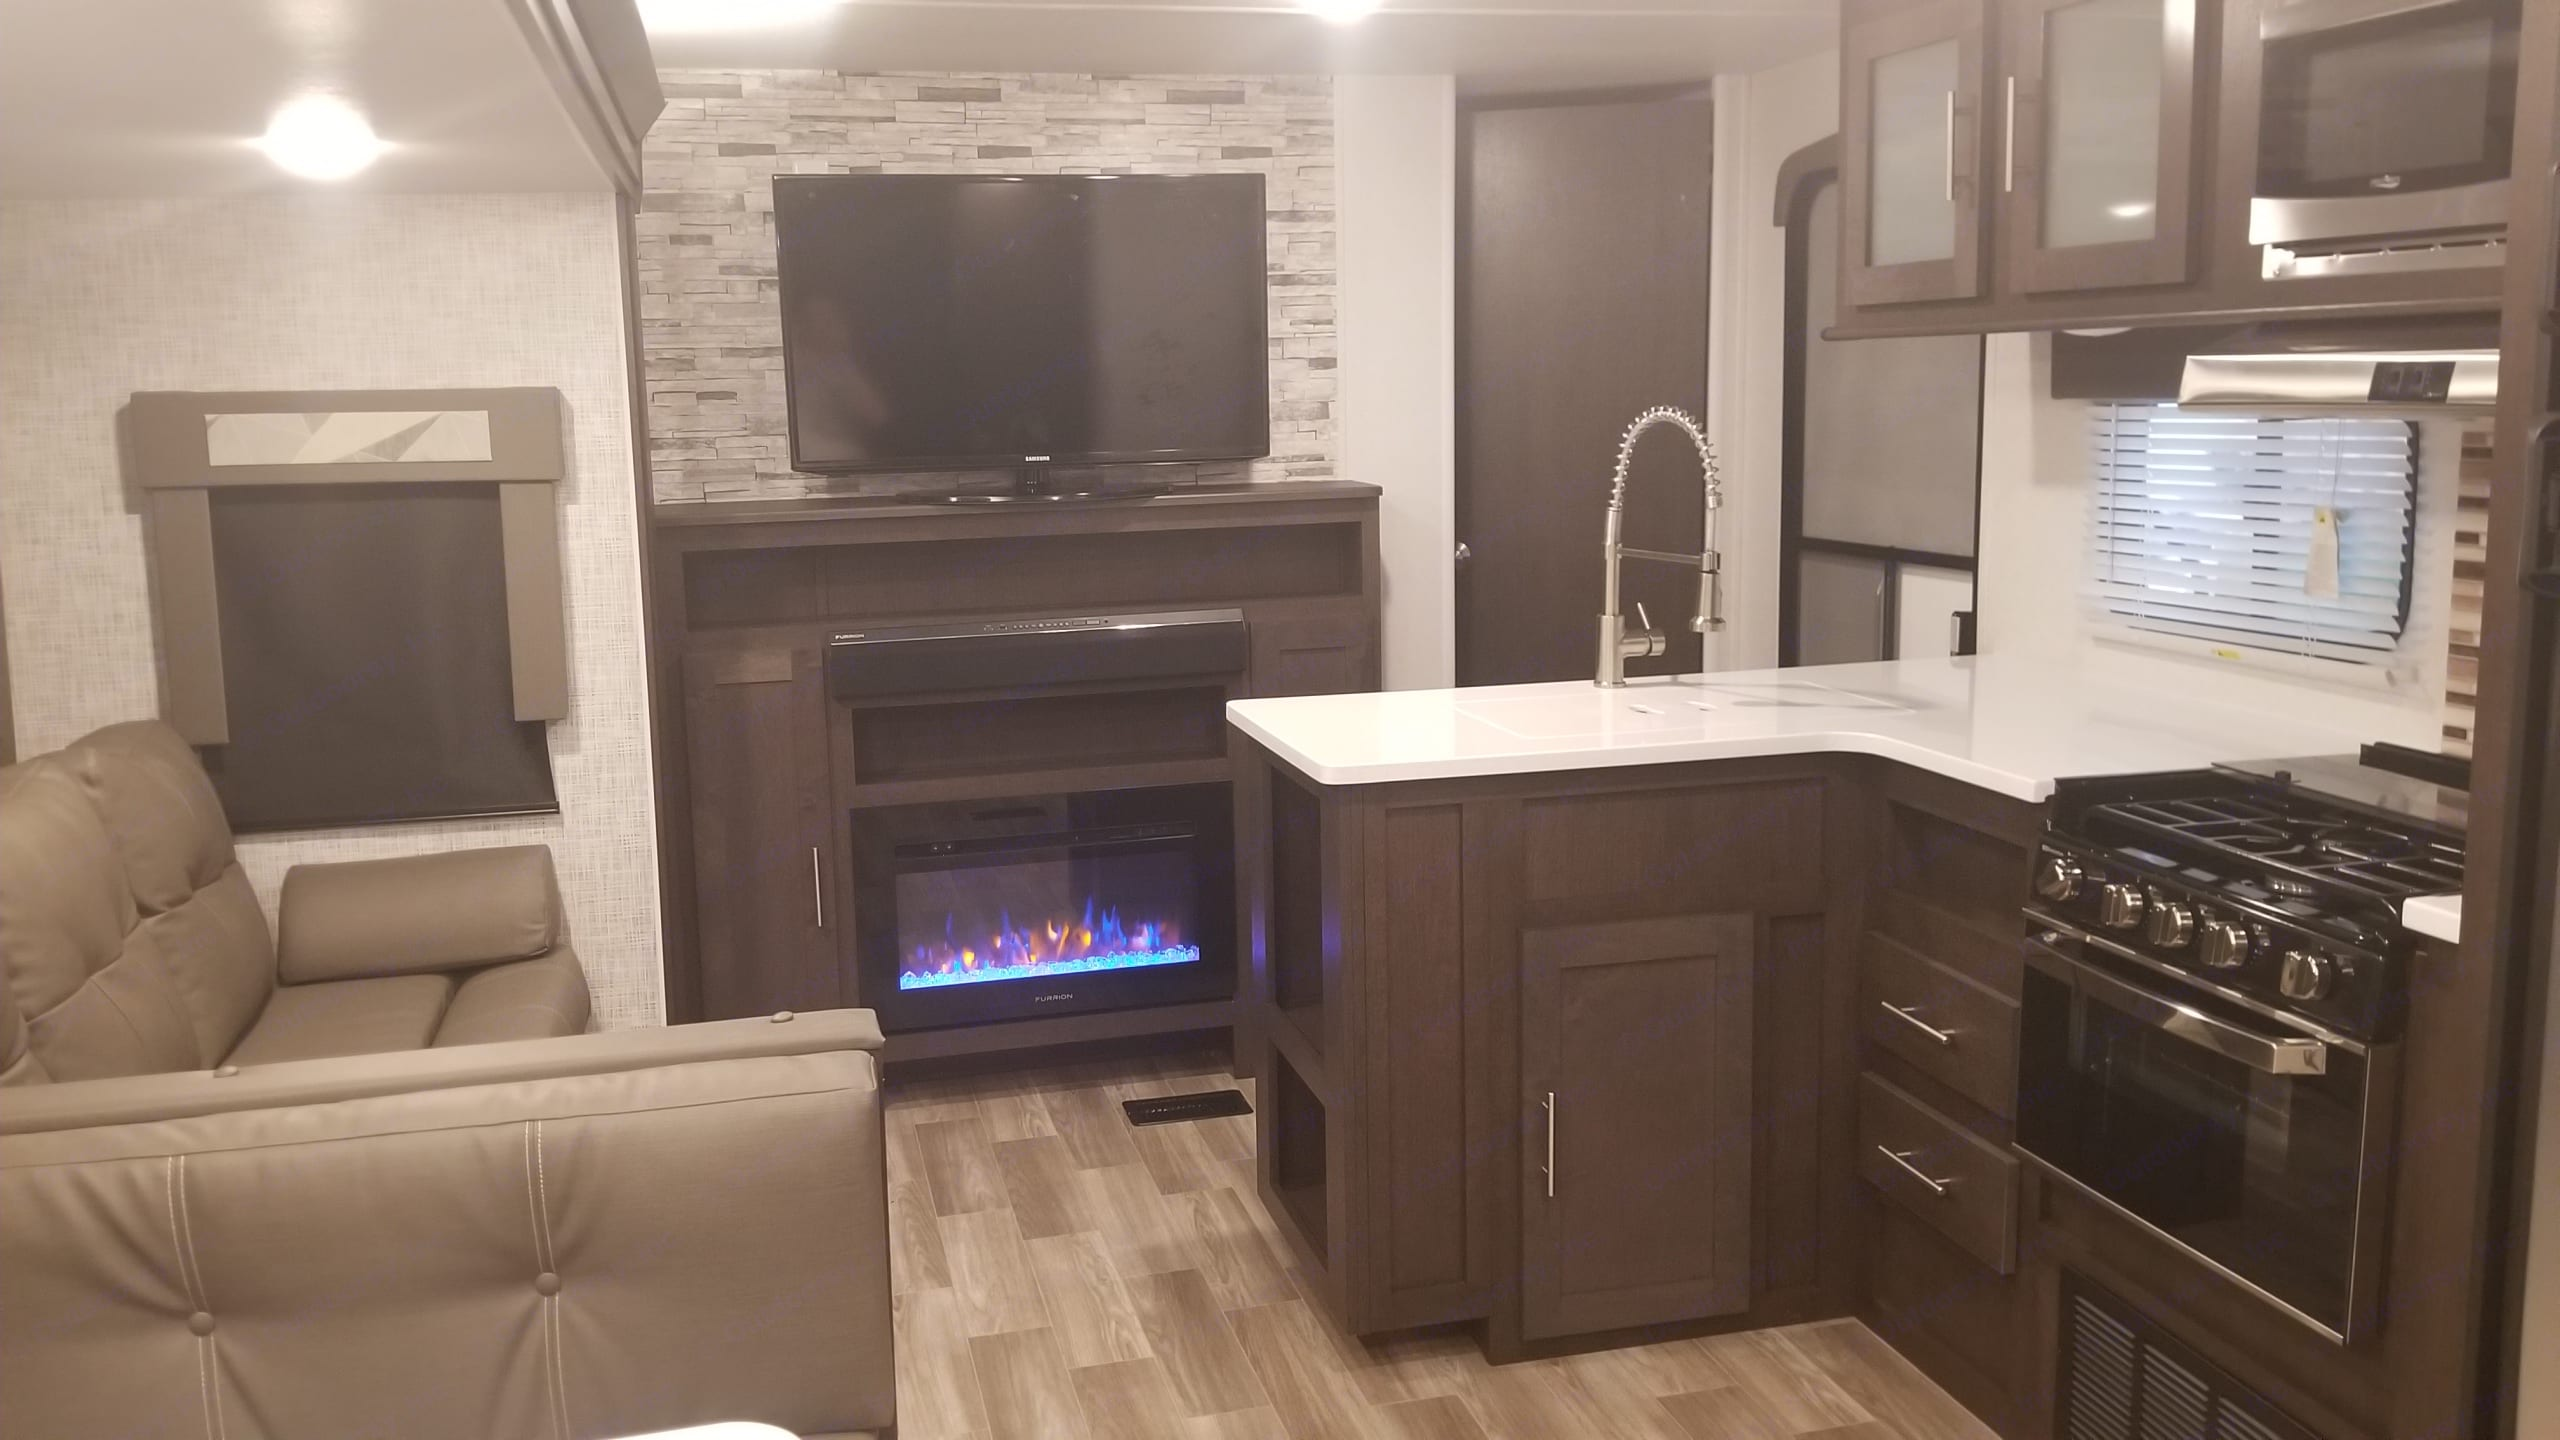 Fireplace with or without heating, great for winter or just for ambiance. Large flatscreen TV with swivel mount, DVD player, full fireplace mantle with storage. . Forest River Wildwood 2020